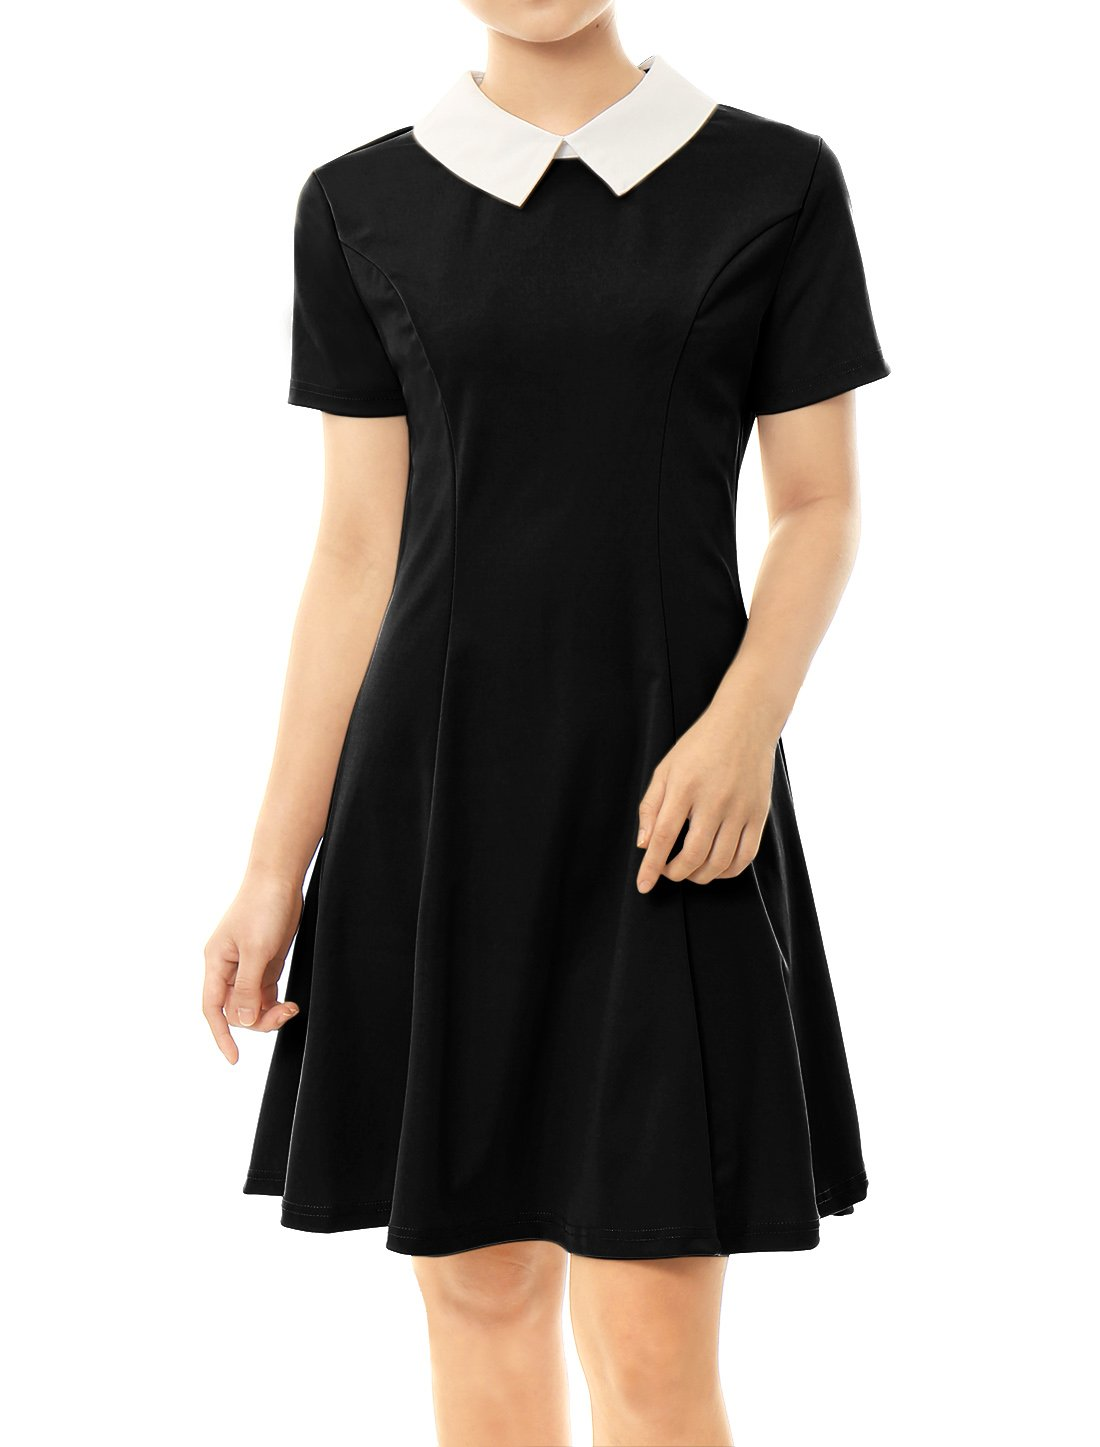 Allegra K Women's Short Sleeves Flare Dress L Black